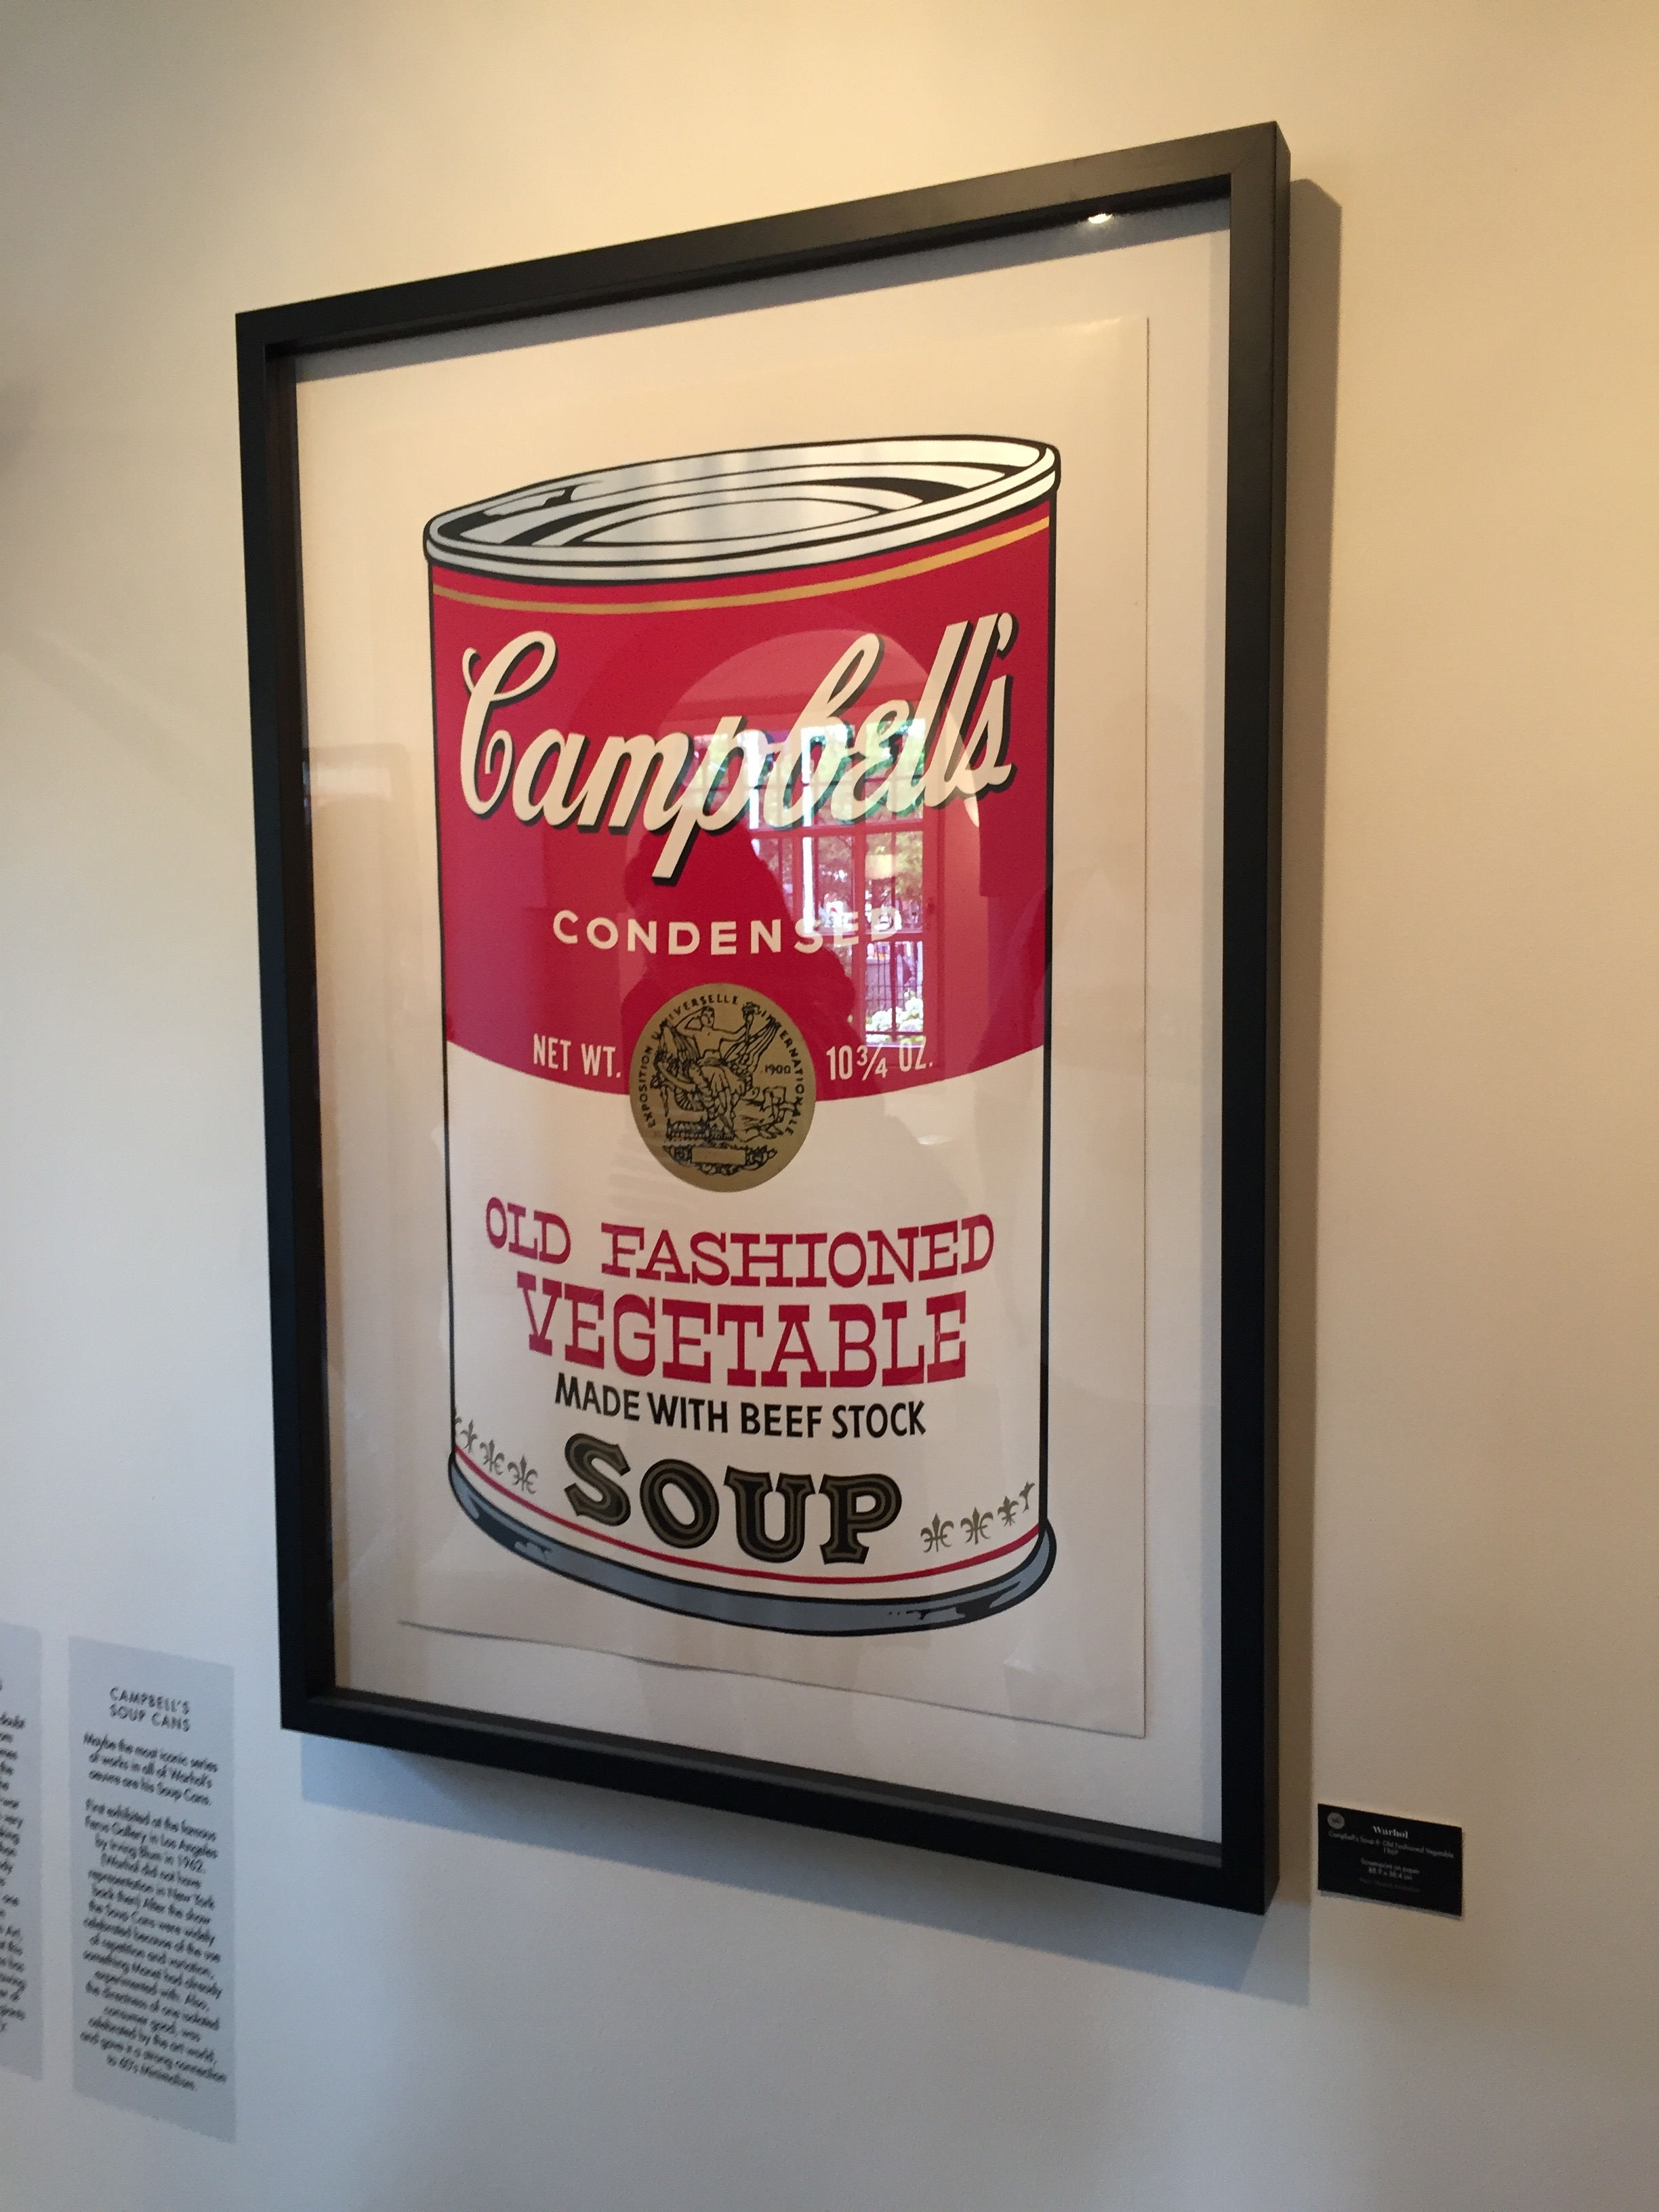 Warhol's Campbell's Soup framed poster inside the Moco Museum in Amsterdam